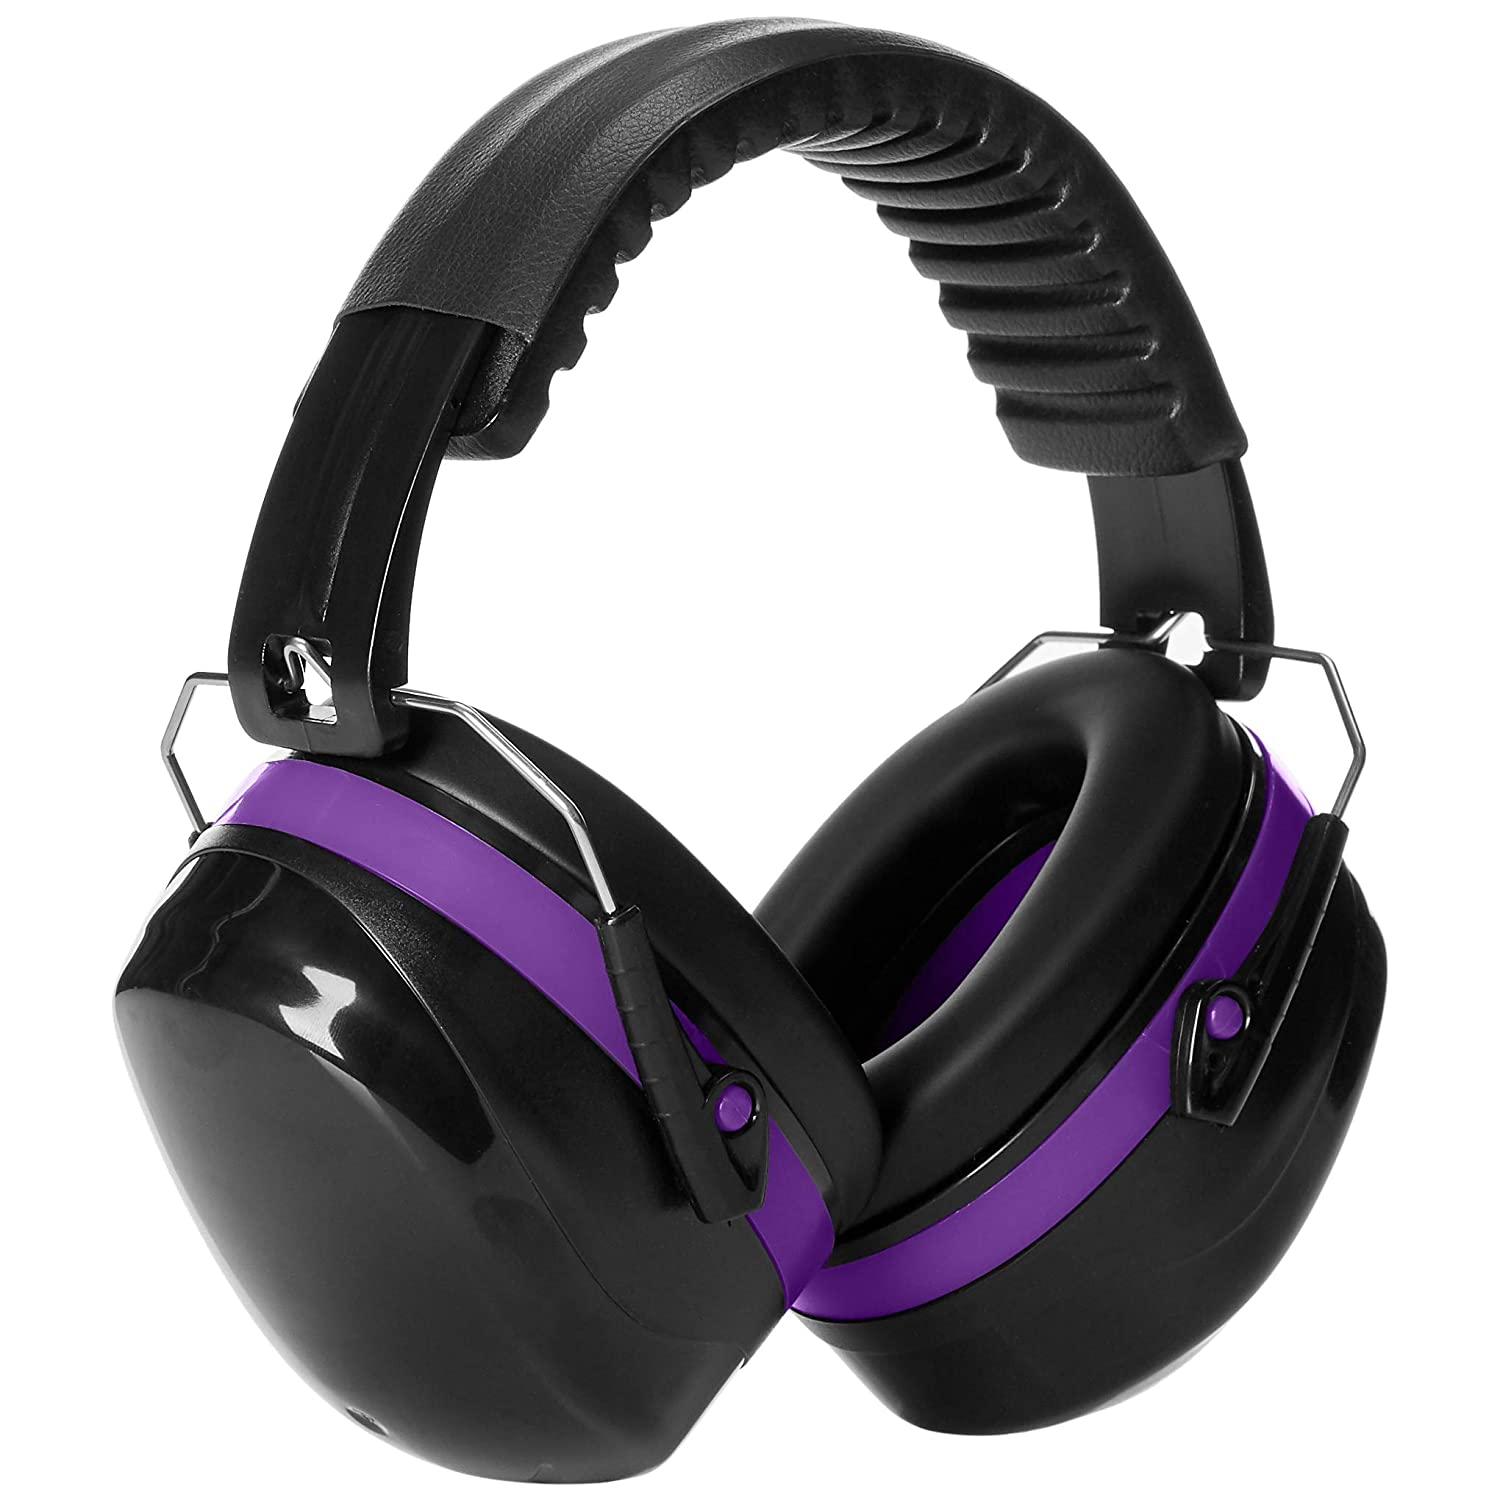 AmazonBasics Noise Reduction Safety Earmuffs Ear Protection, Black and Purple